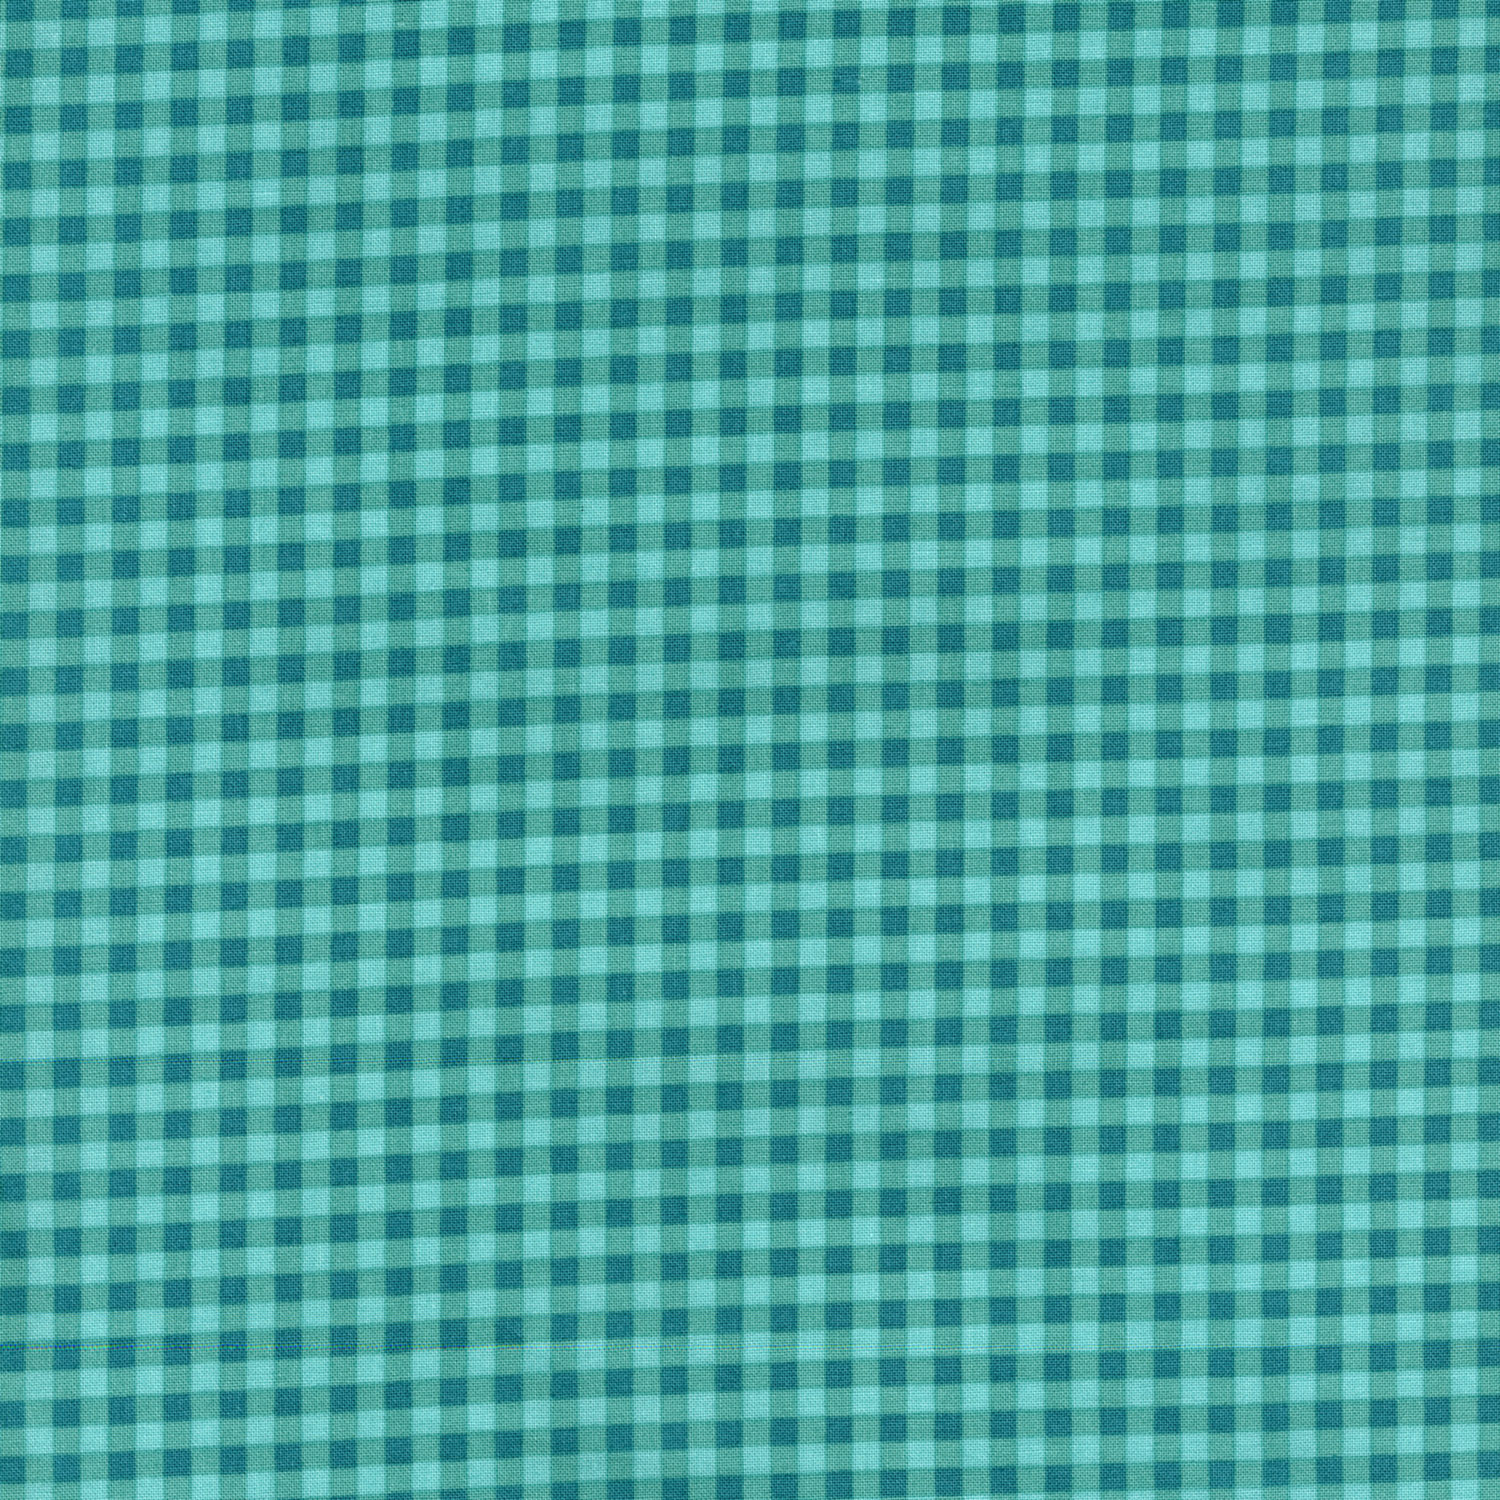 2929-001 SMALL GINGHAM - TEAL